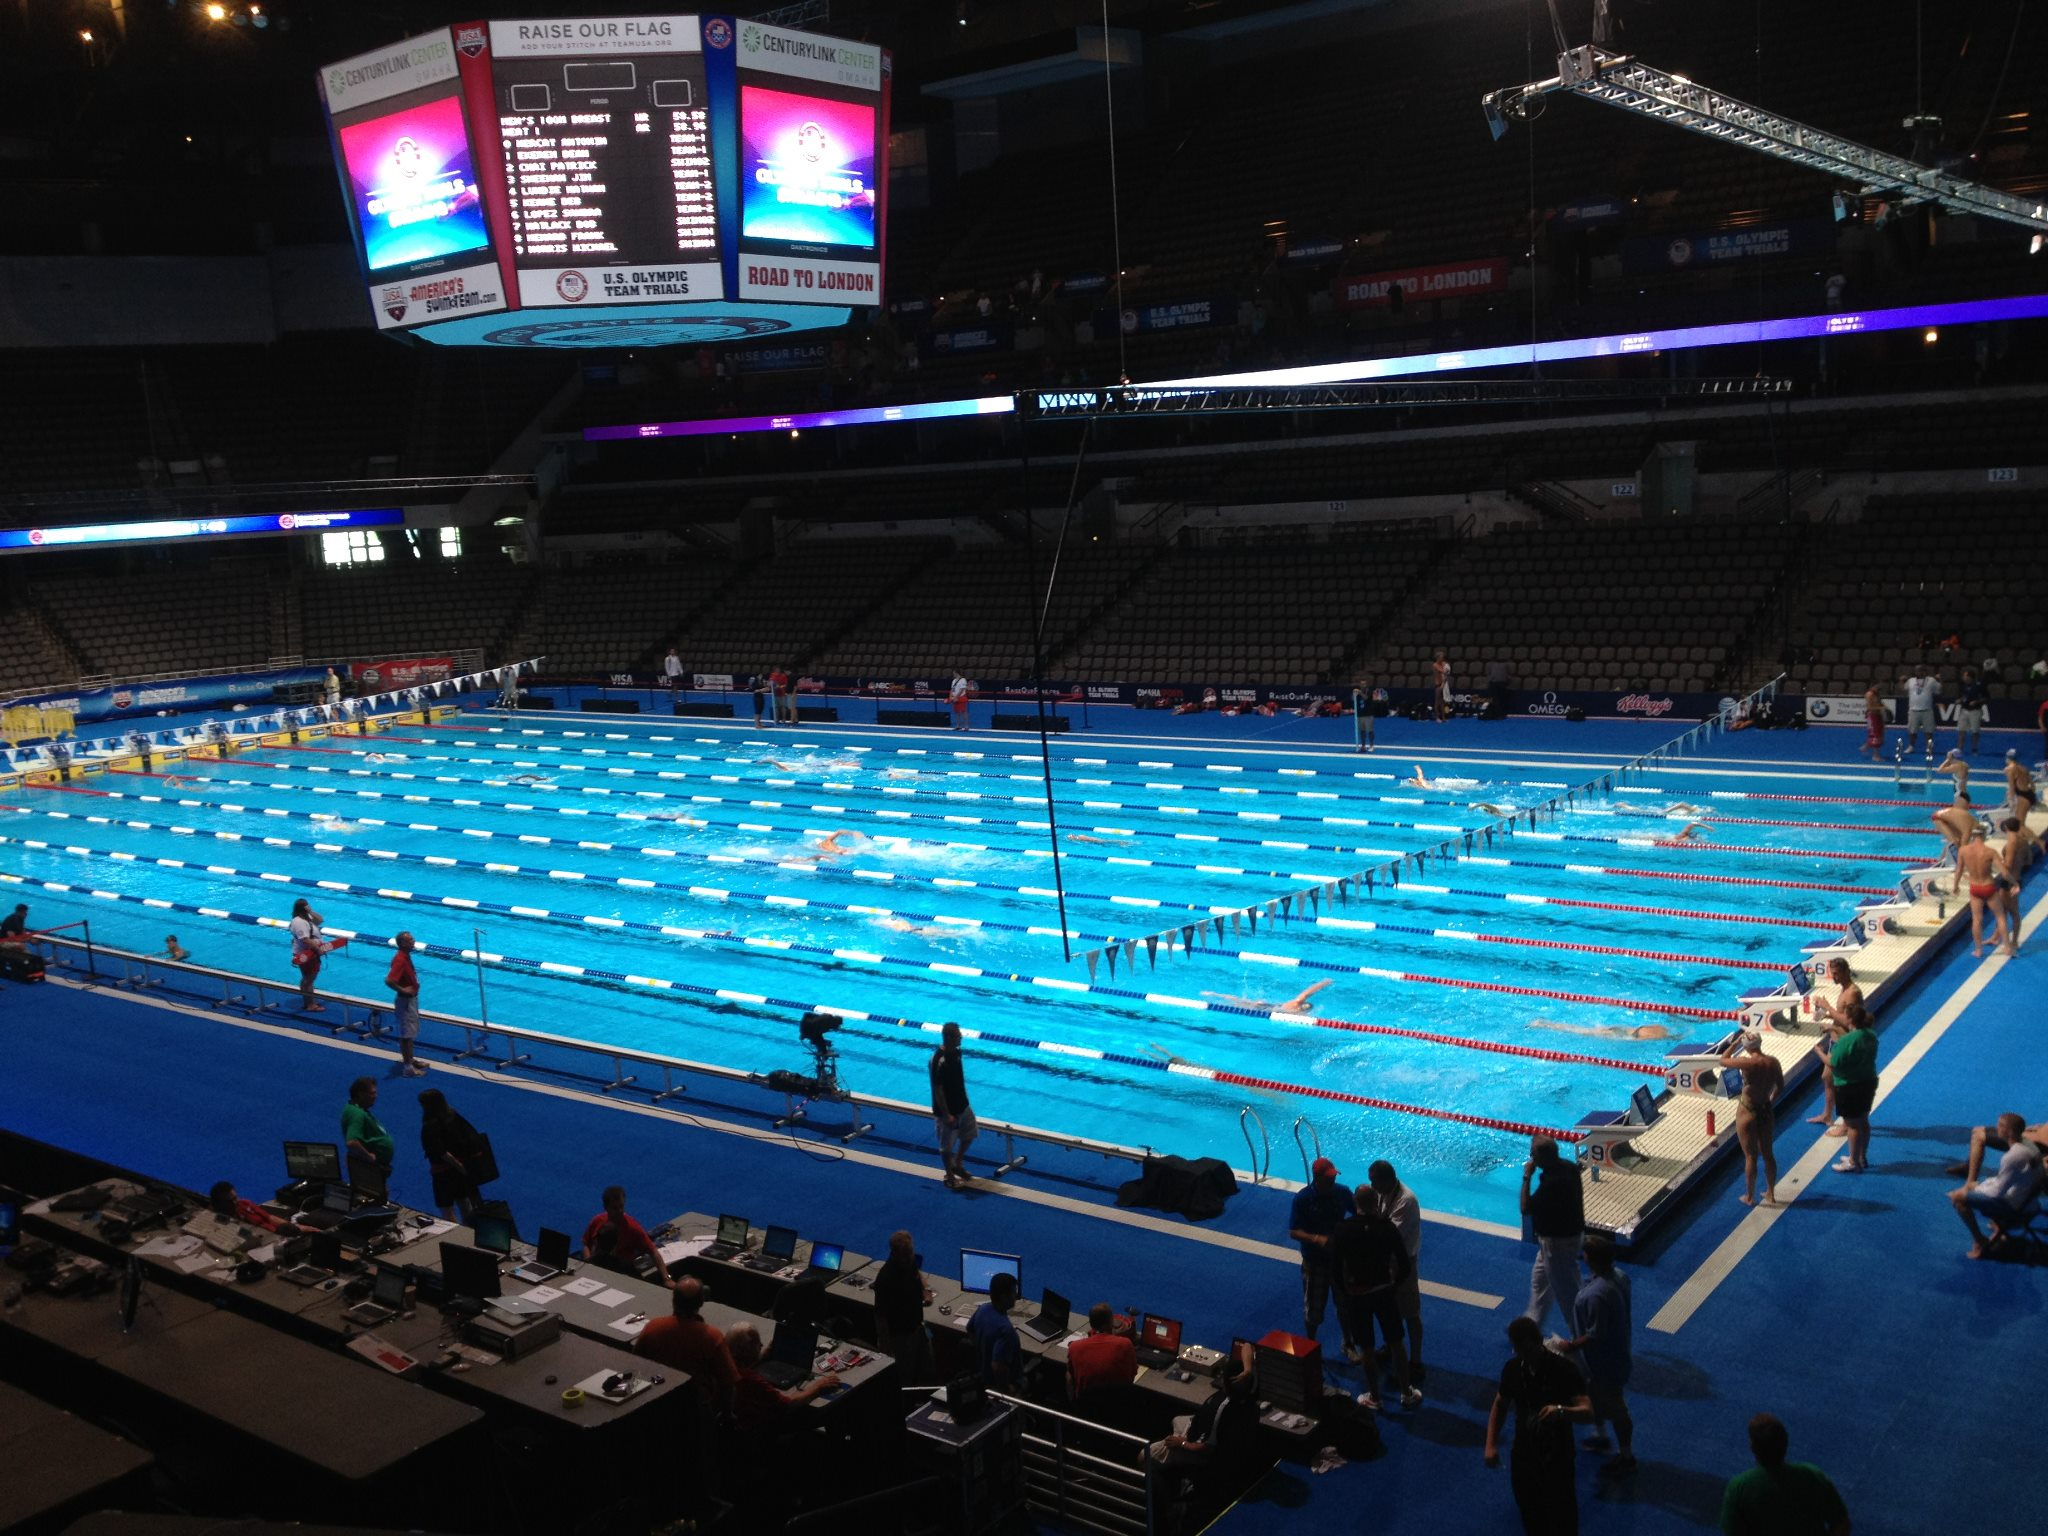 Olympic Swim Trials 2012 - Omaha, Nebraska